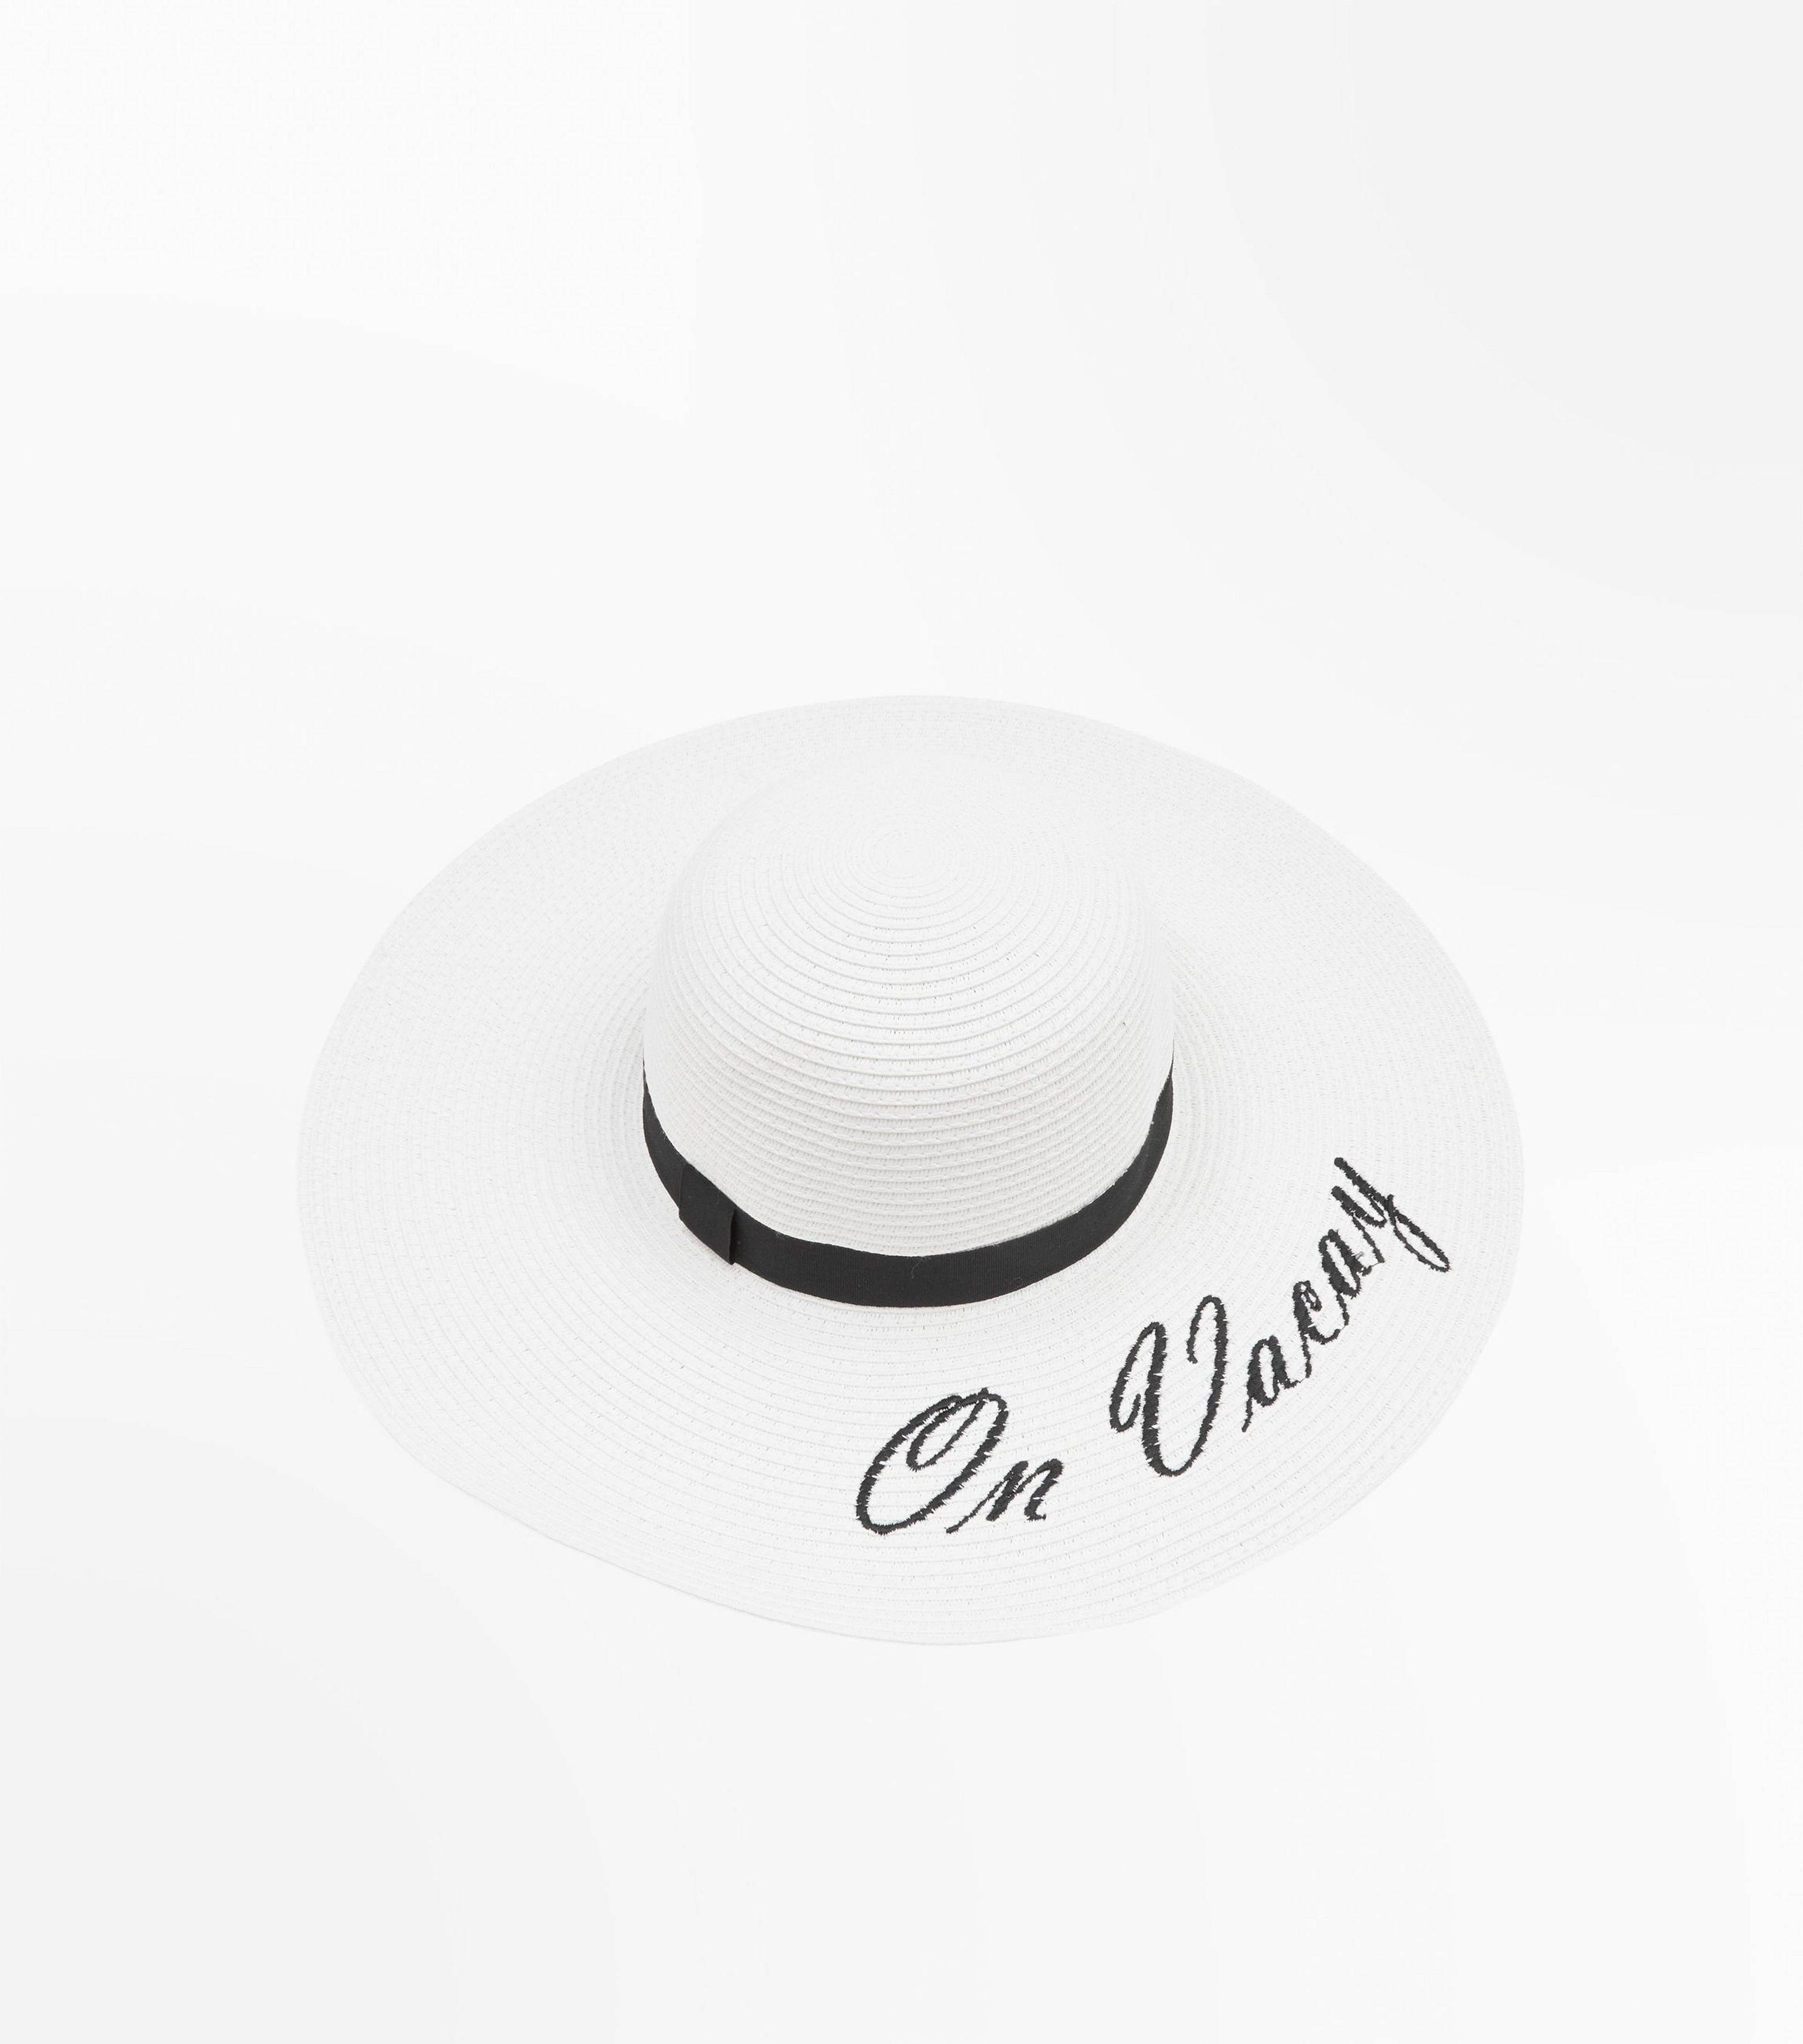 baa3d211e44 New Look White On Vacay Slogan Floppy Hat in White - Lyst